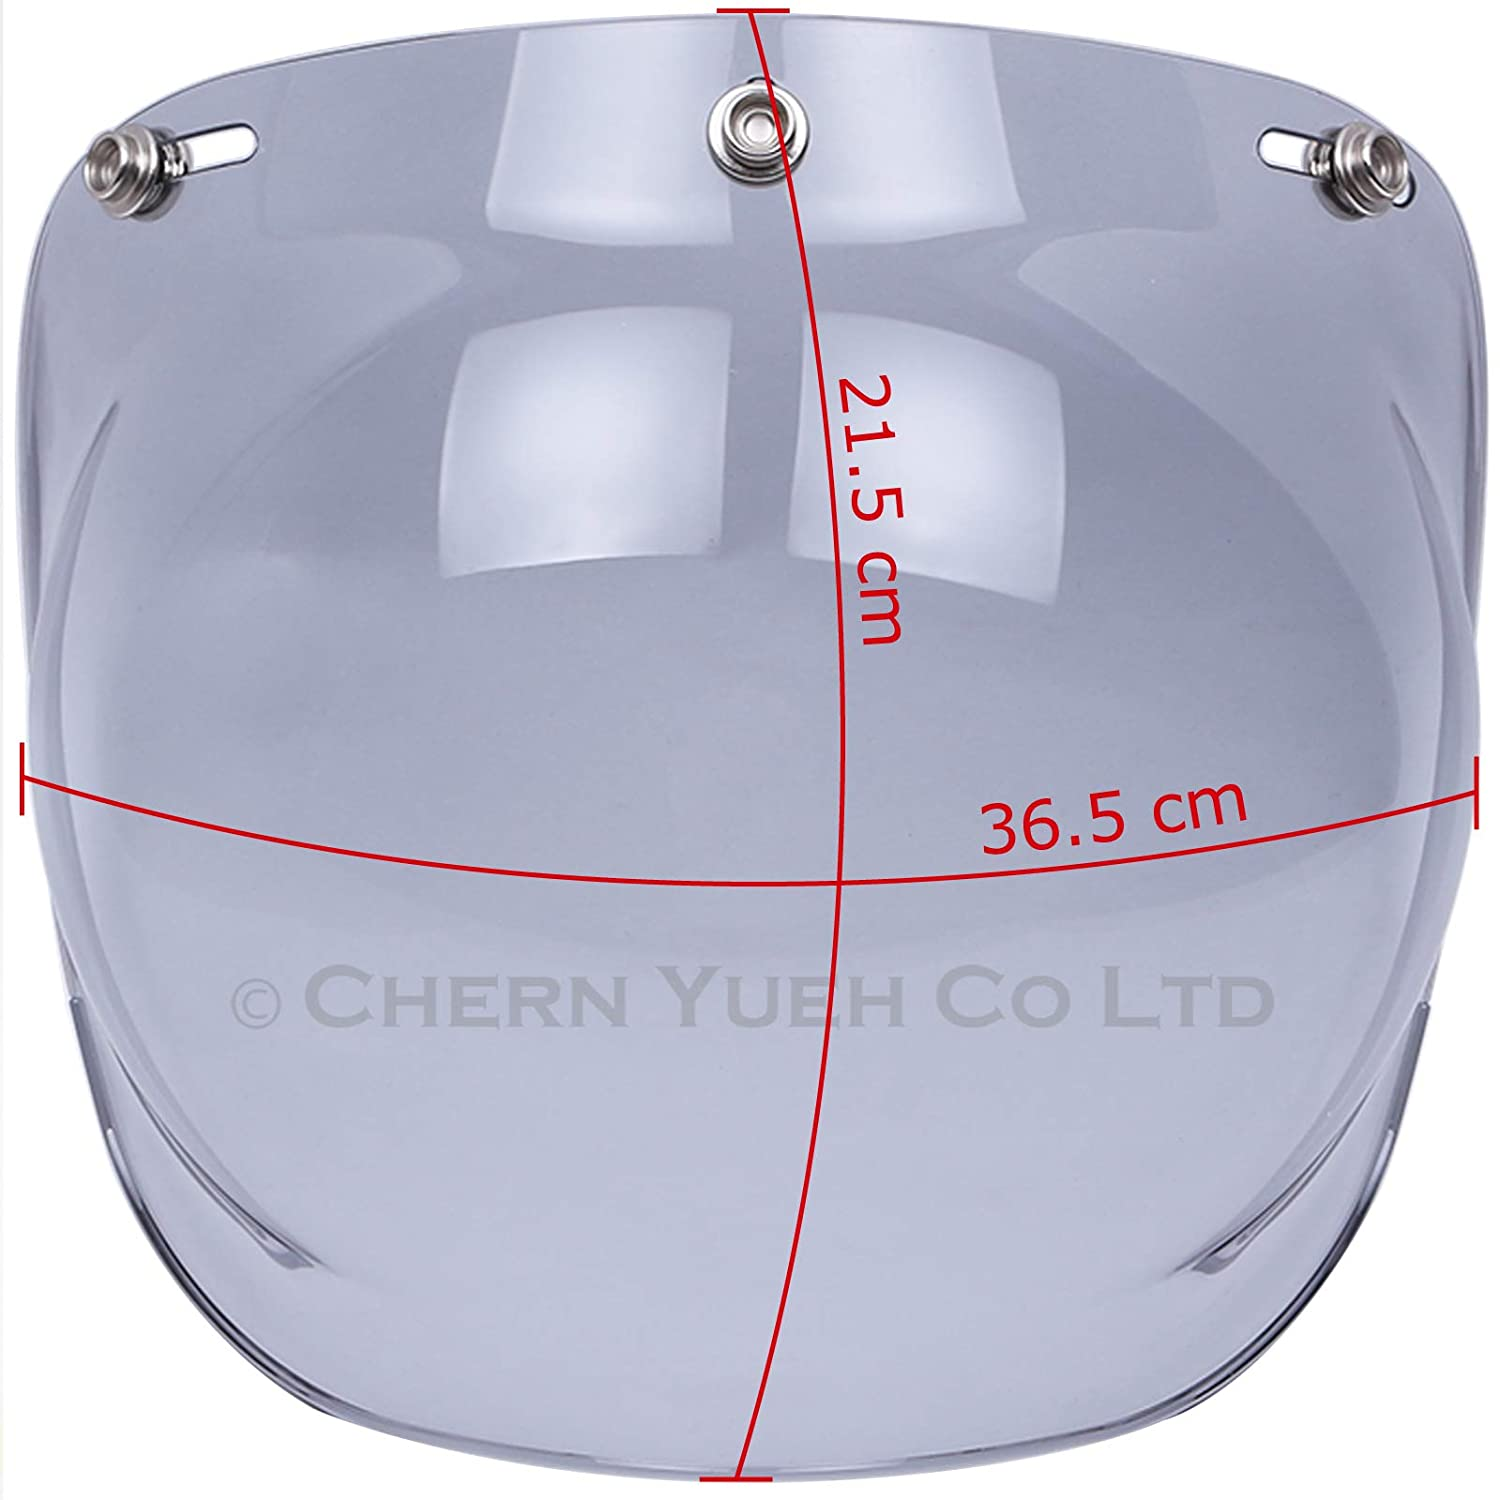 7638ecf0 Amazon.com: Chern Yueh Motorcycle Helmet Bubble Shield with Flip Adapter  for 3-Snap Half Open Face Helmets (Light Smoke): Automotive